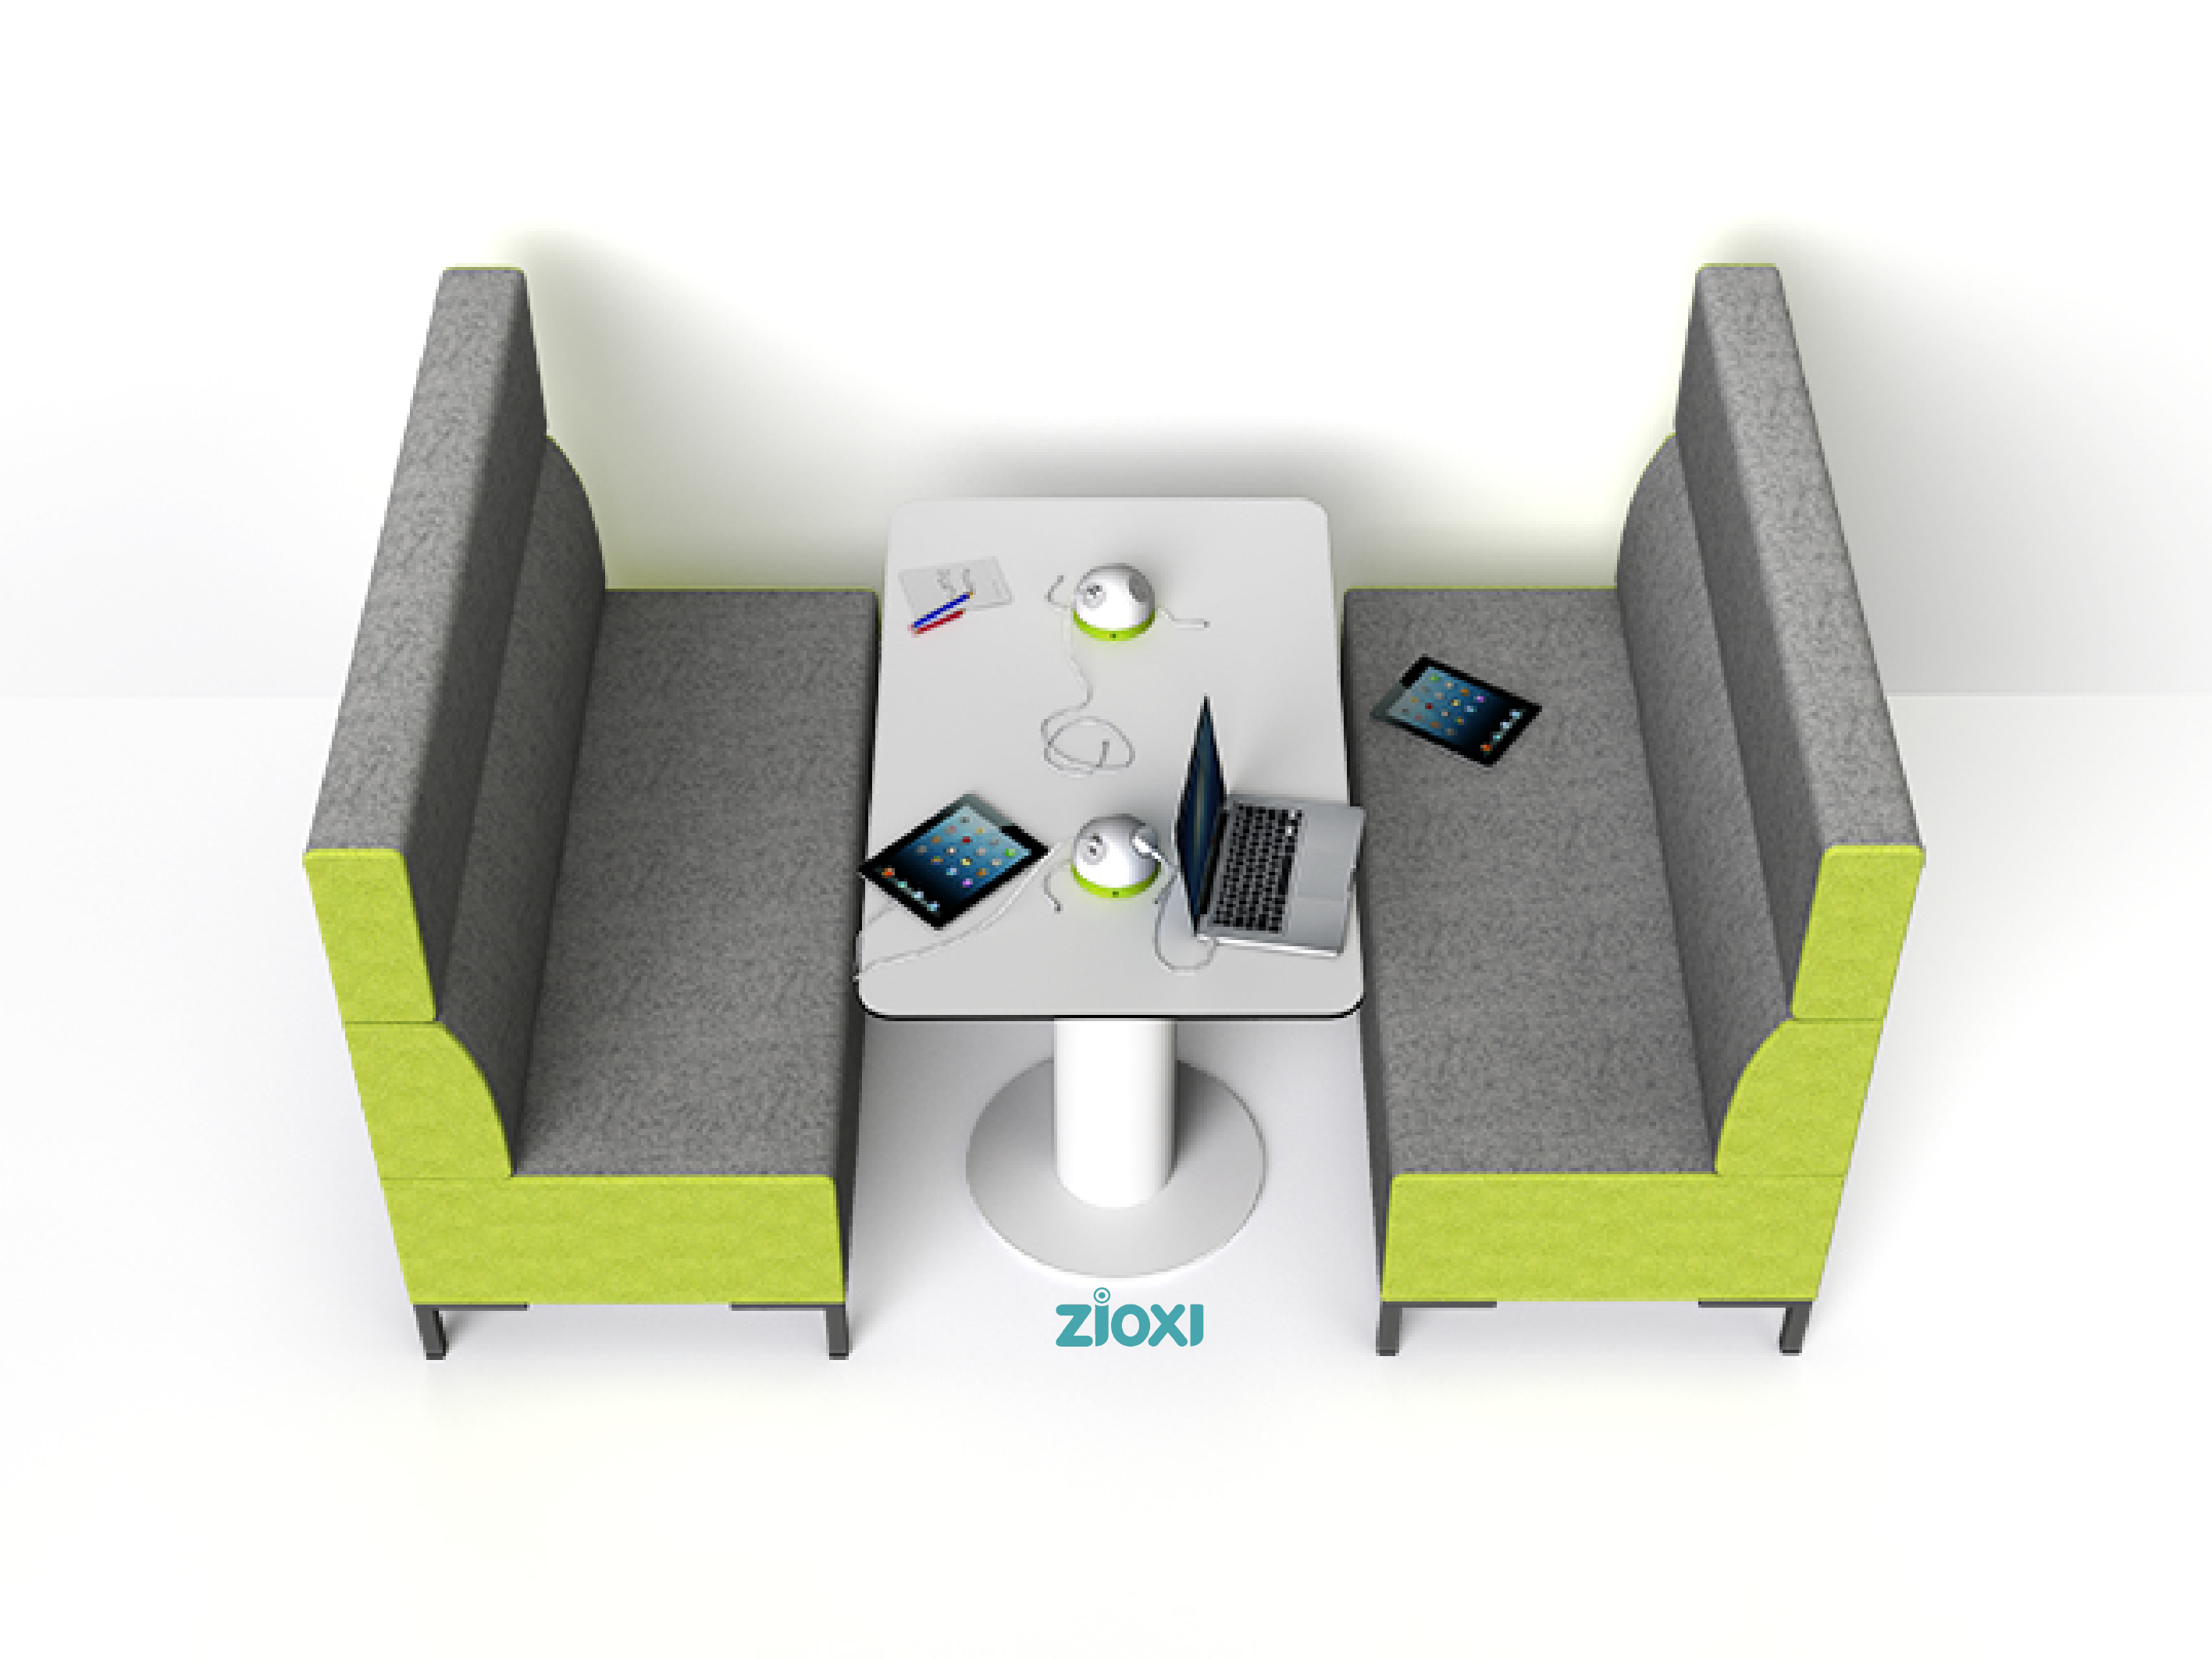 Espace travail coworking huddle room collaboratif work space Zioxi